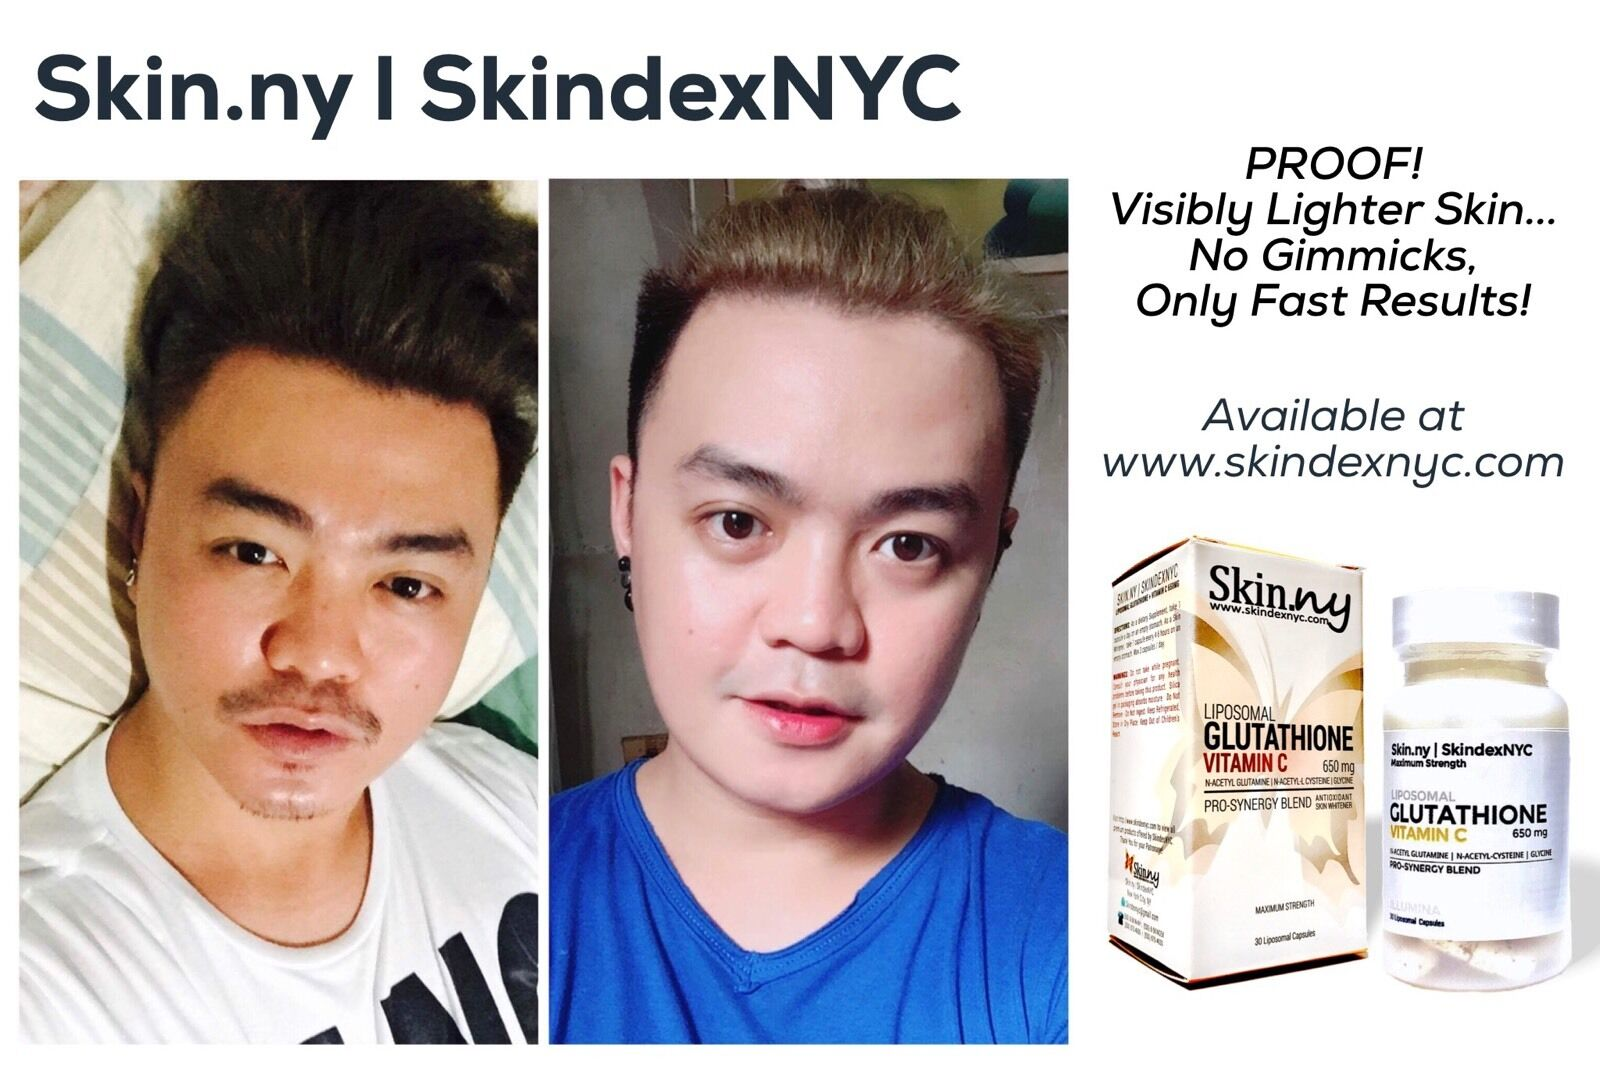 2 Bottles Skindexnyc Liposomal Glutathione and Vitamin C 650mg (save )